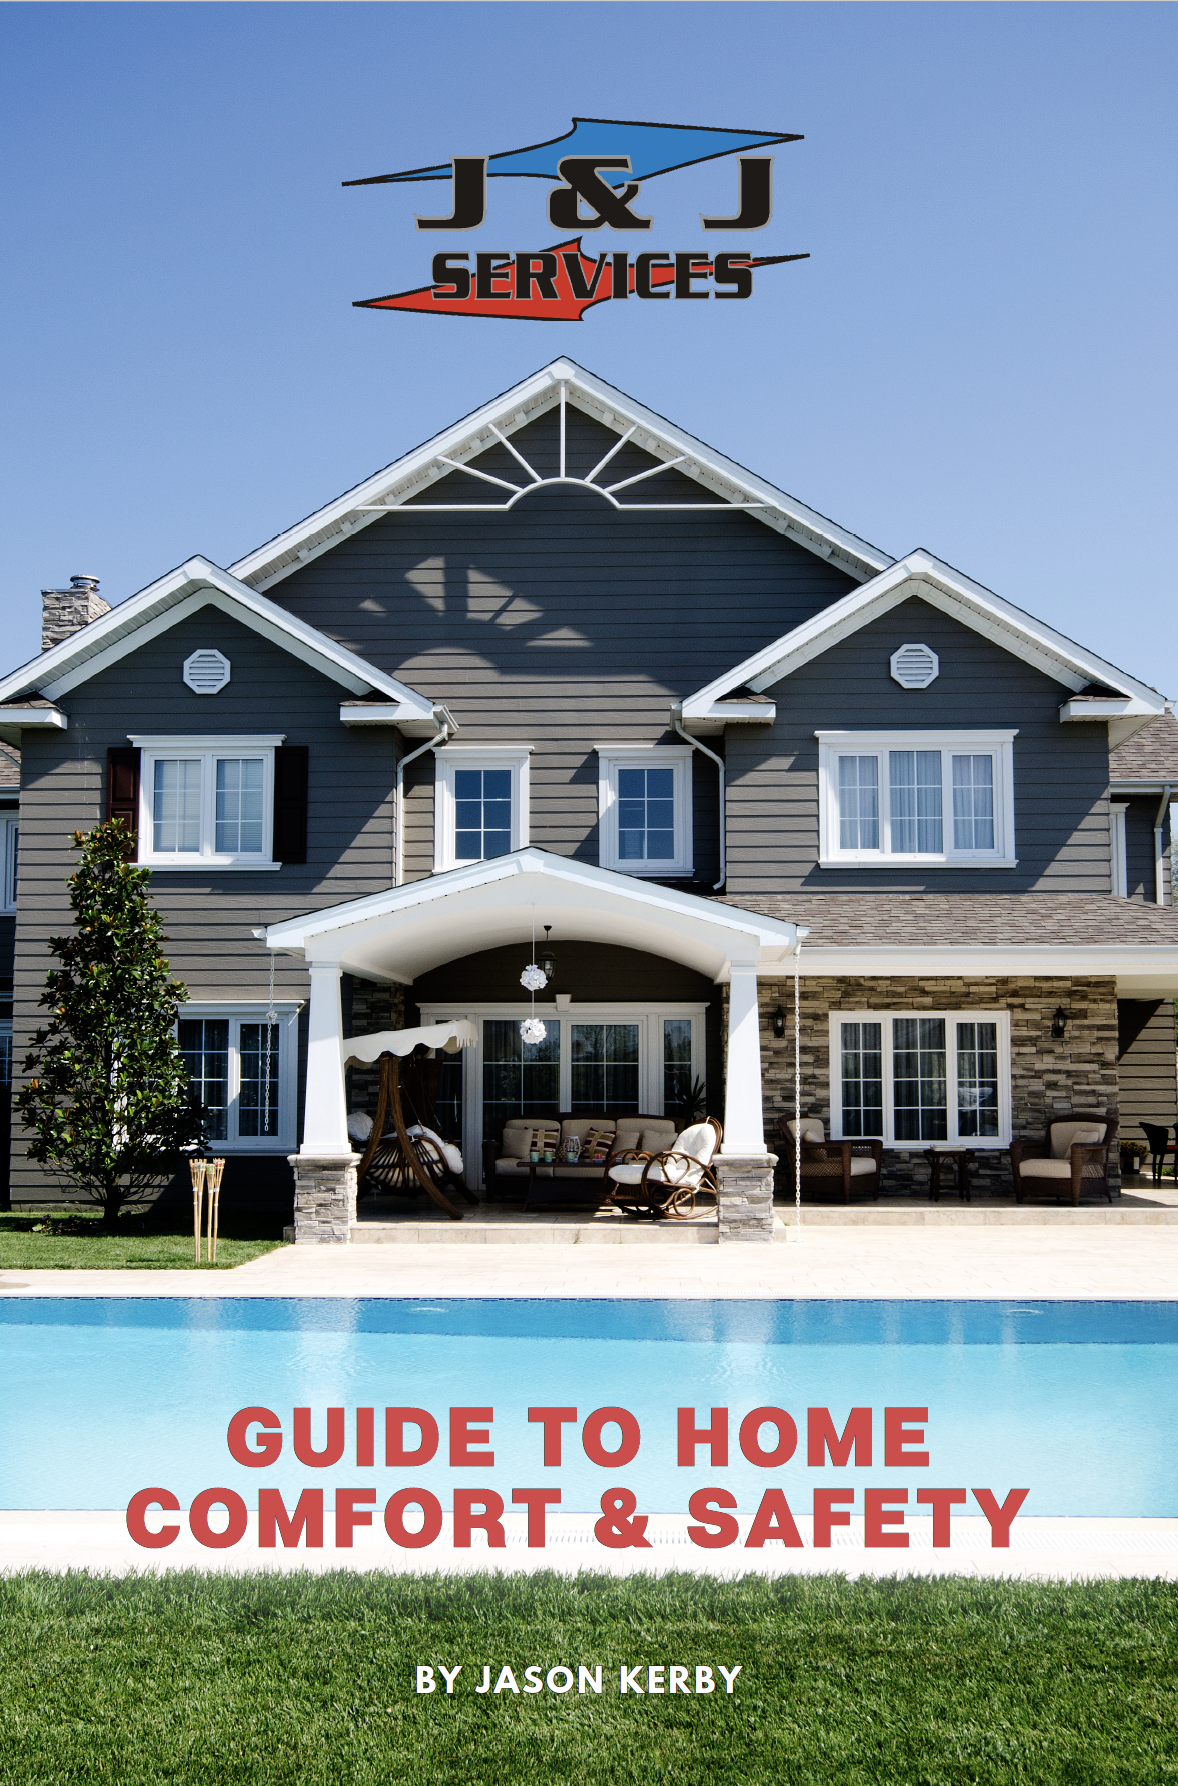 J&J Services Guide to Home Comfort & Safety Cover Image